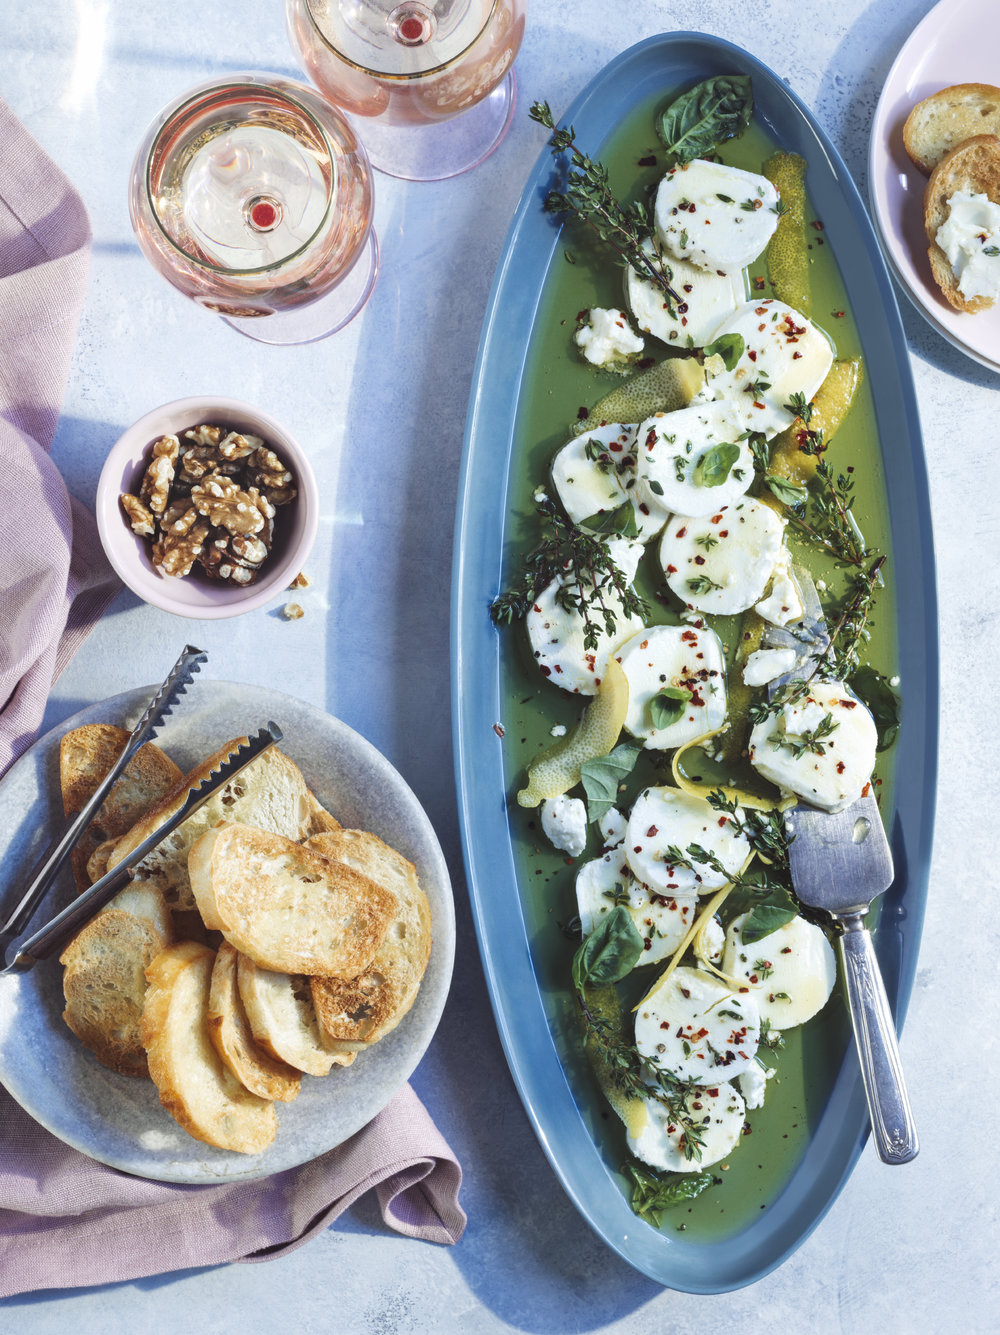 Goat cheese appetizer best health magazine entertaining